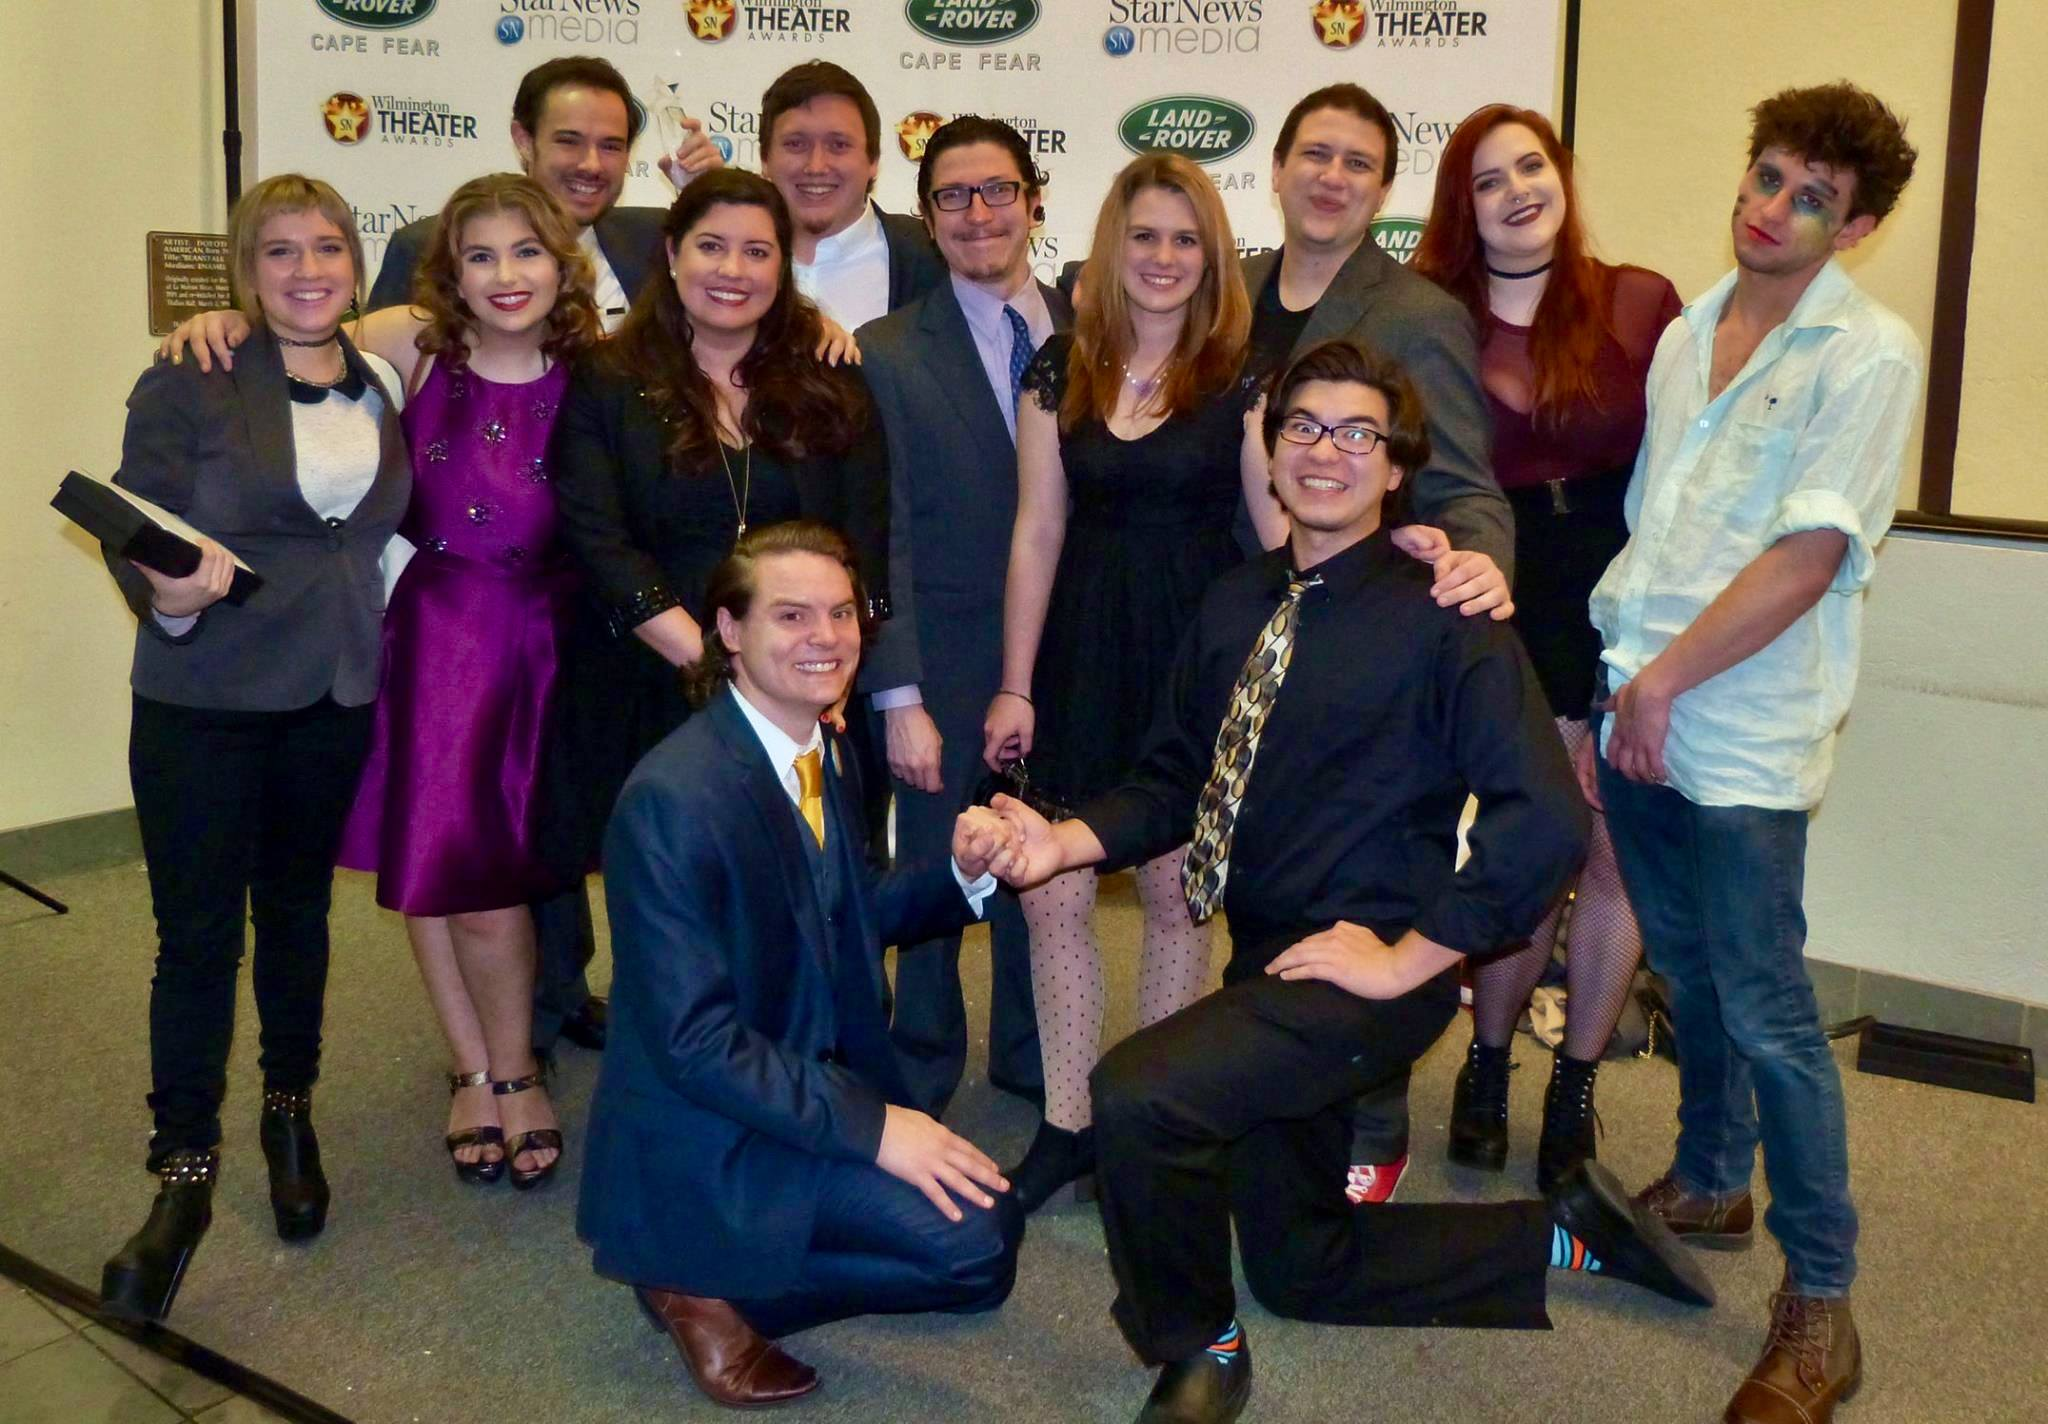 PSL Comedy honored at the Wilmington Theater Awards